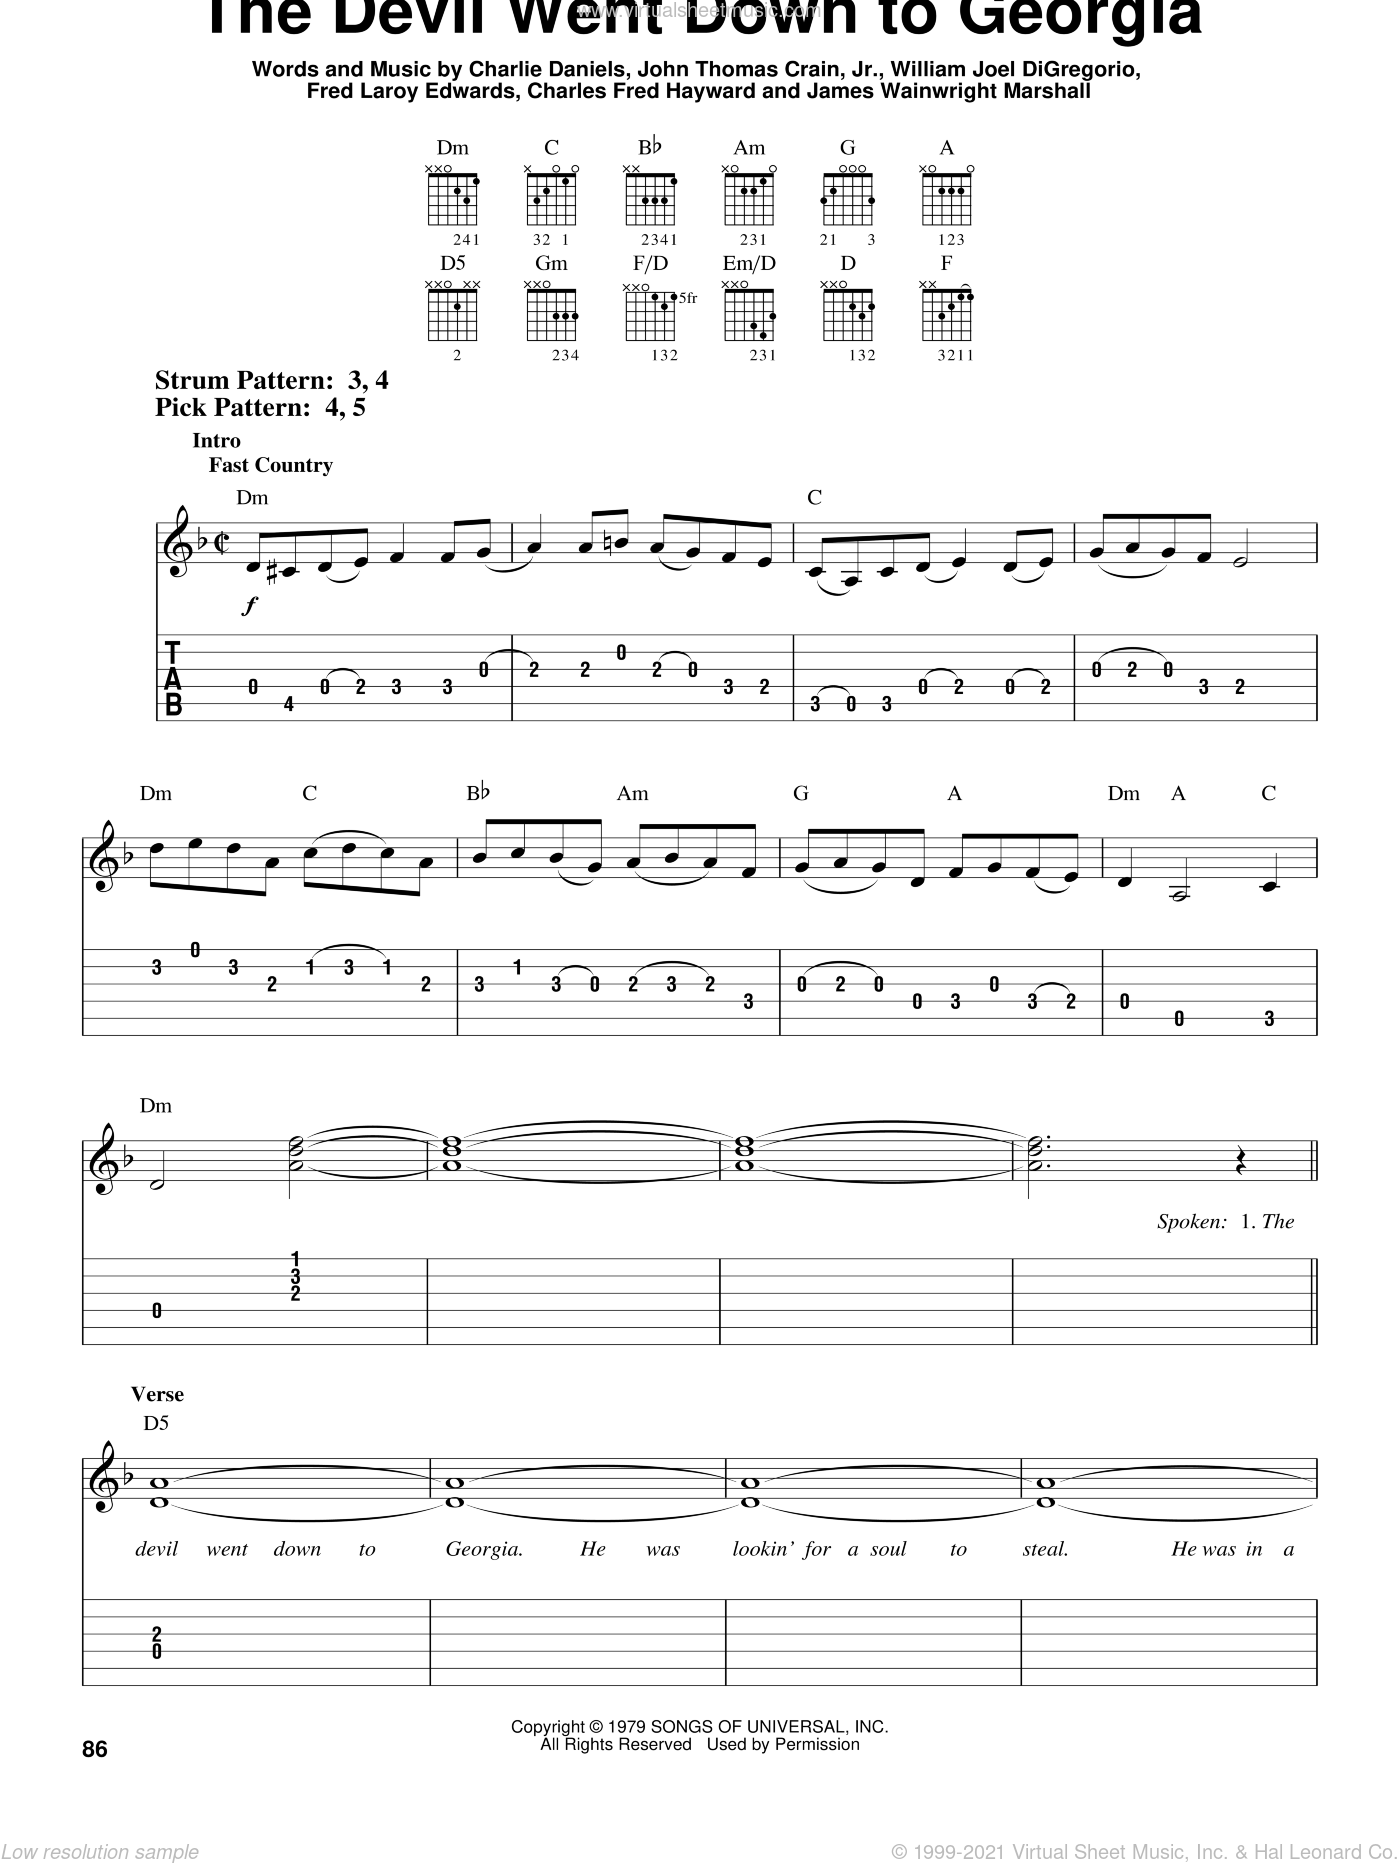 The Devil Went Down To Georgia sheet music for guitar solo (easy tablature) by Charlie Daniels Band, Charles Fred Hayward, Charlie Daniels, Fred Laroy Edwards, James Wainwright Marshall, John Thomas Crain, Jr. and William Joel DiGregorio, easy guitar (easy tablature)